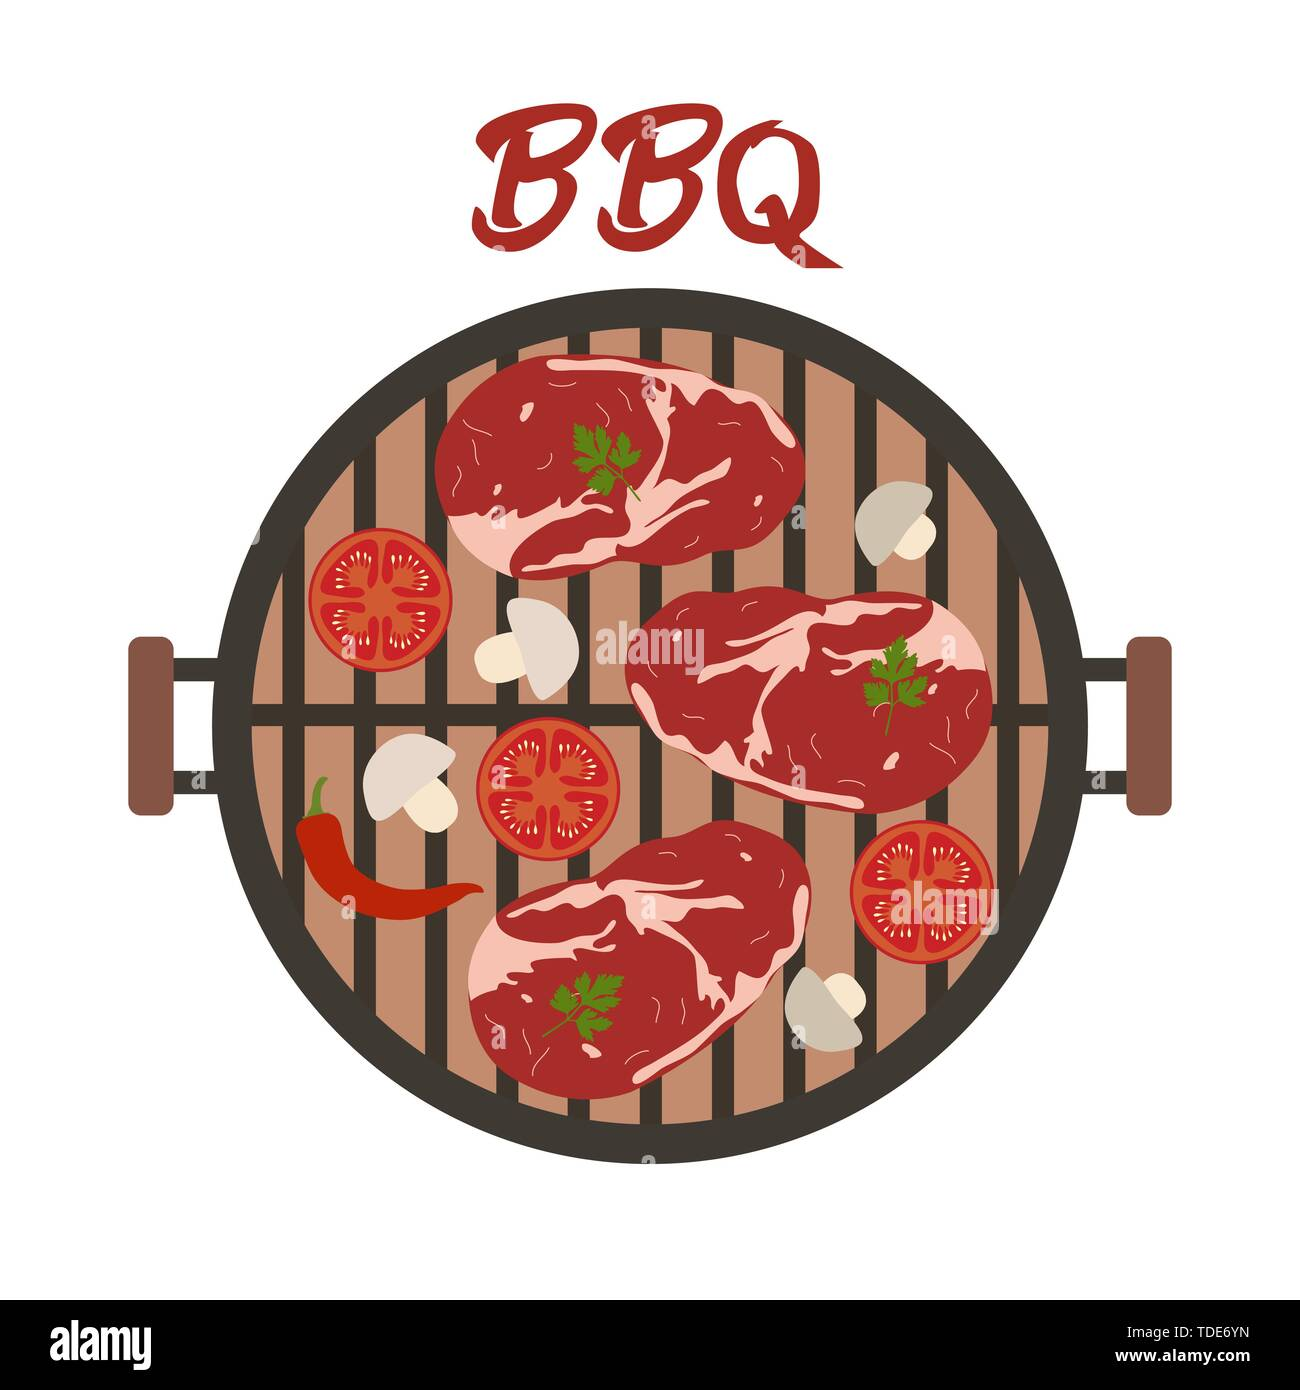 Vector illustration with round barbecue grill top view with meat and vegetables. BBQ party background. Design for party card, banner, poster or print. - Stock Image